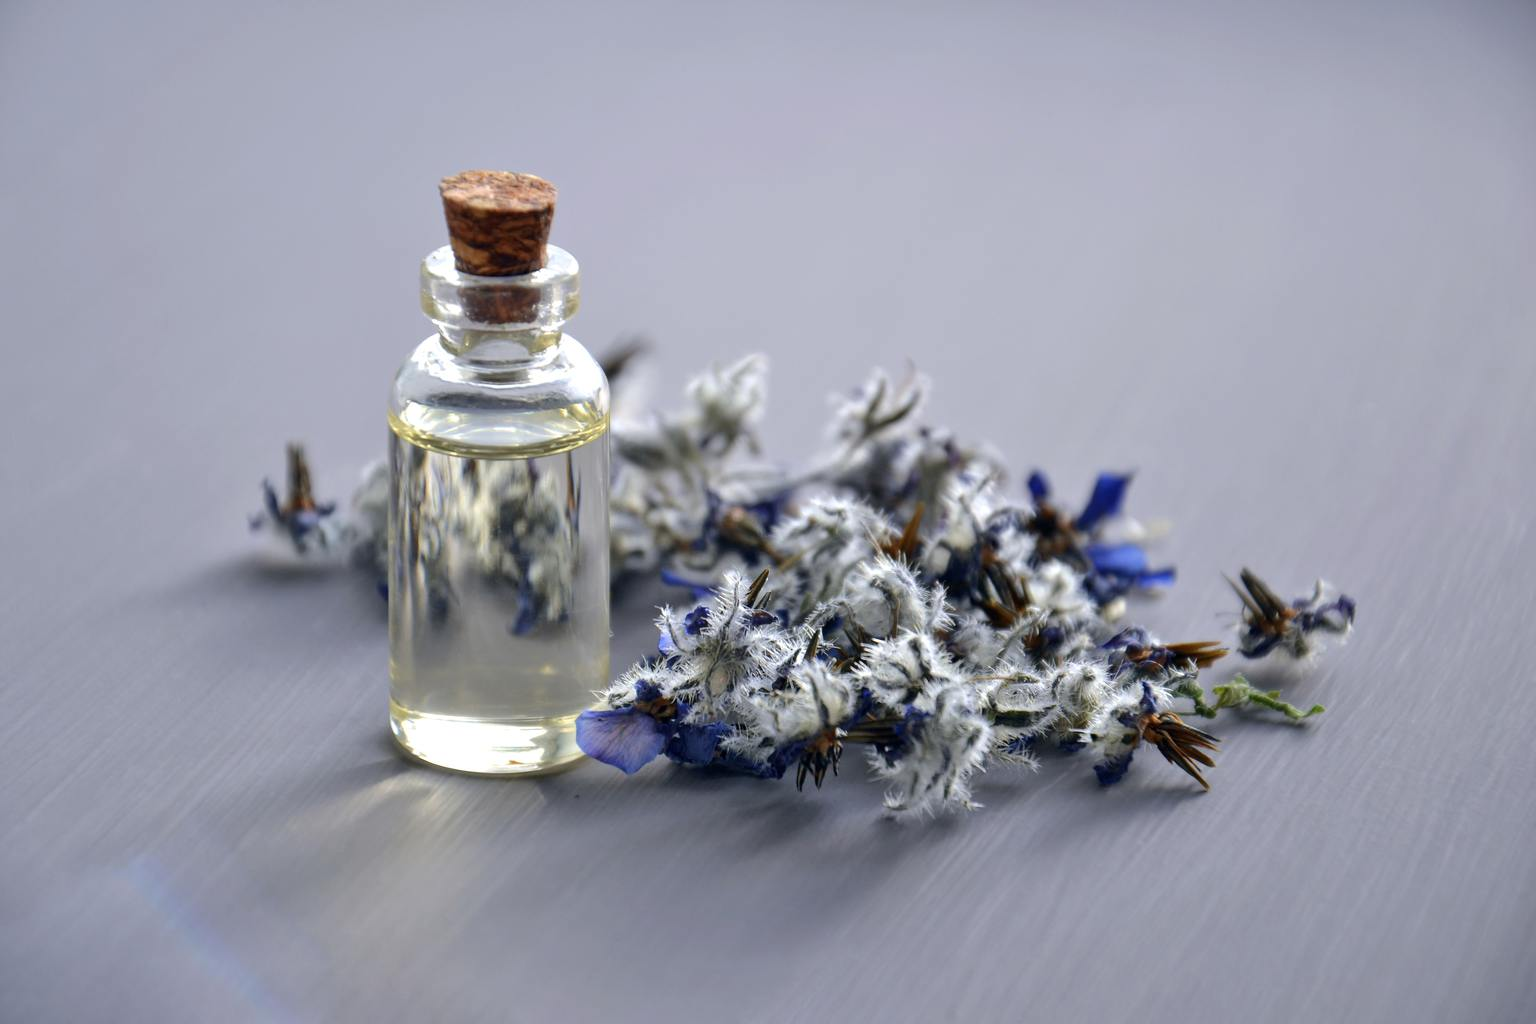 essential oil fragrance for your partner